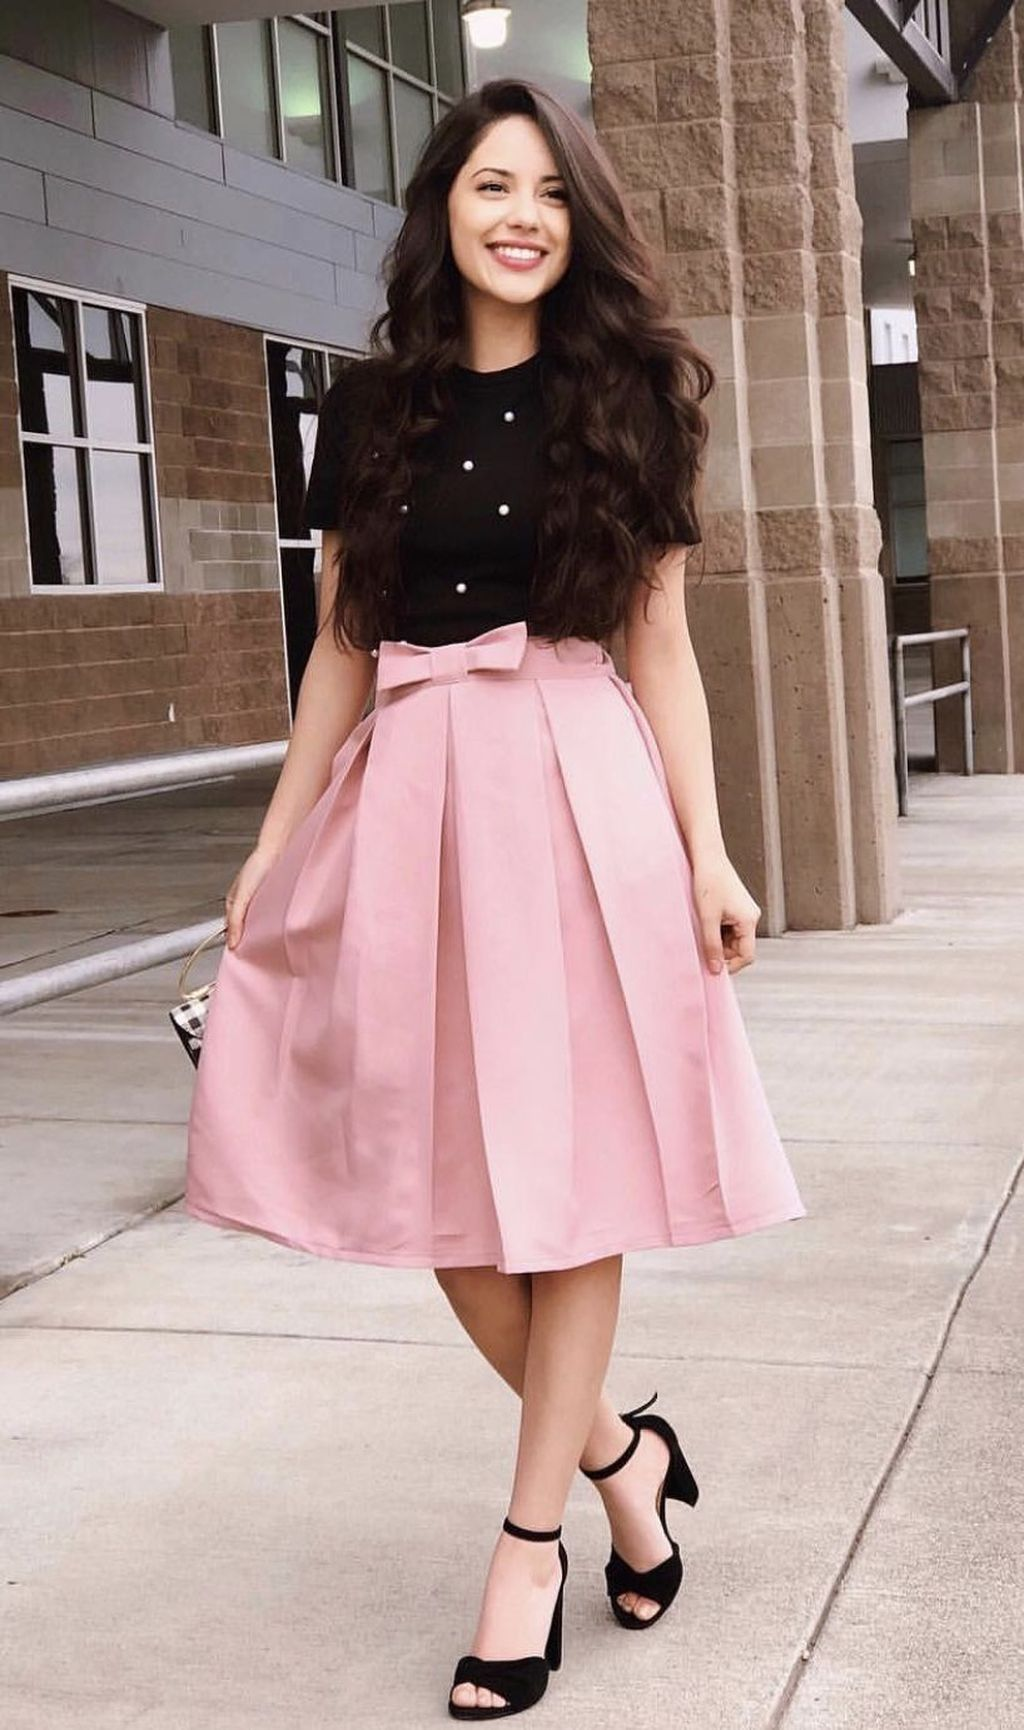 Cute Pink Skirts Outfit Ideas For Spring